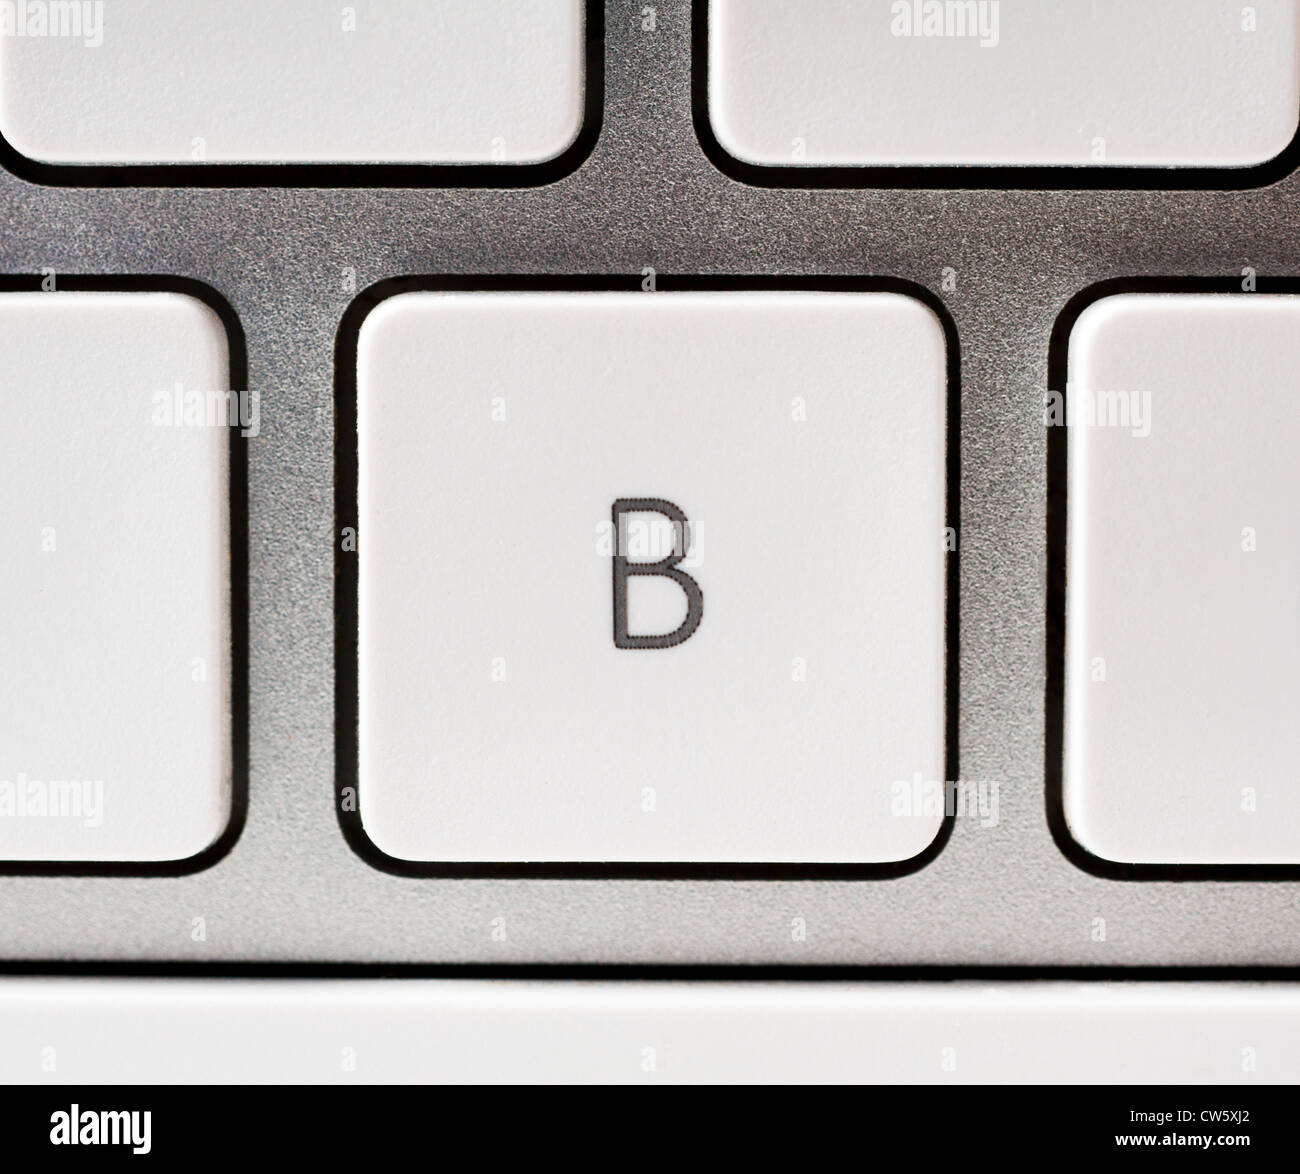 Letter B on an Apple keyboard - Stock Image